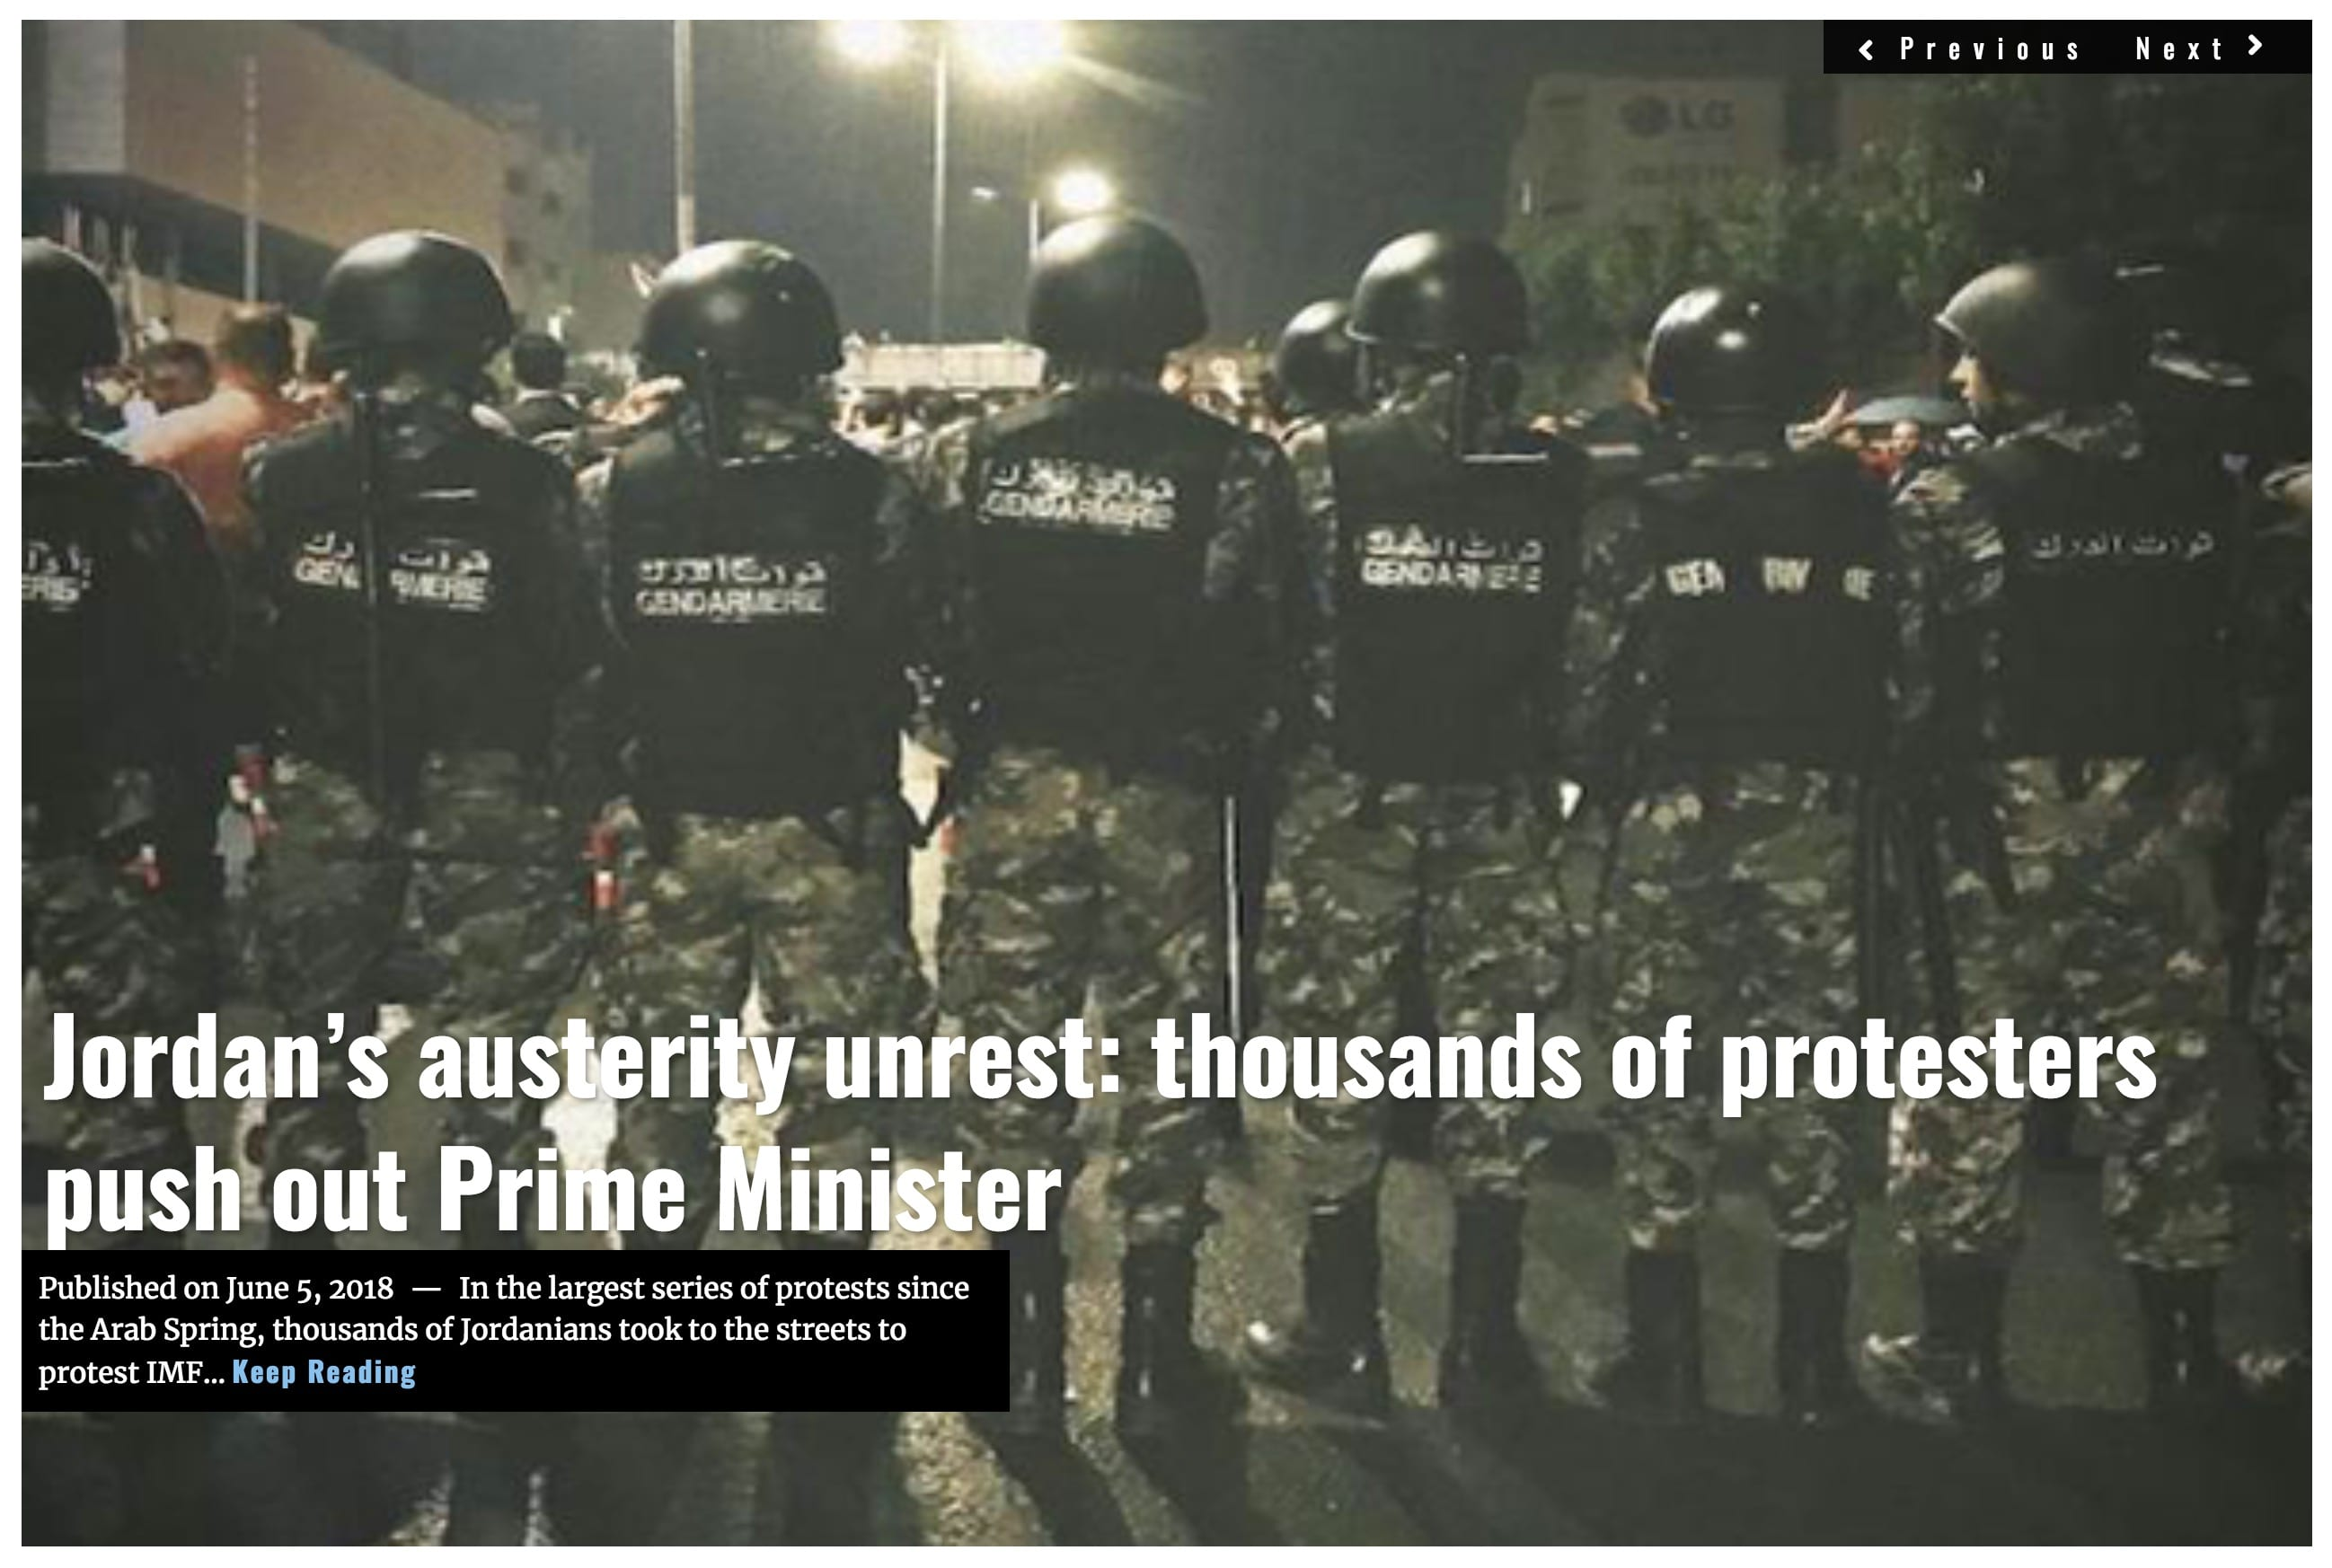 Image Lima Charlie News Headline Jordan Austerity Protests JUN 5 2018